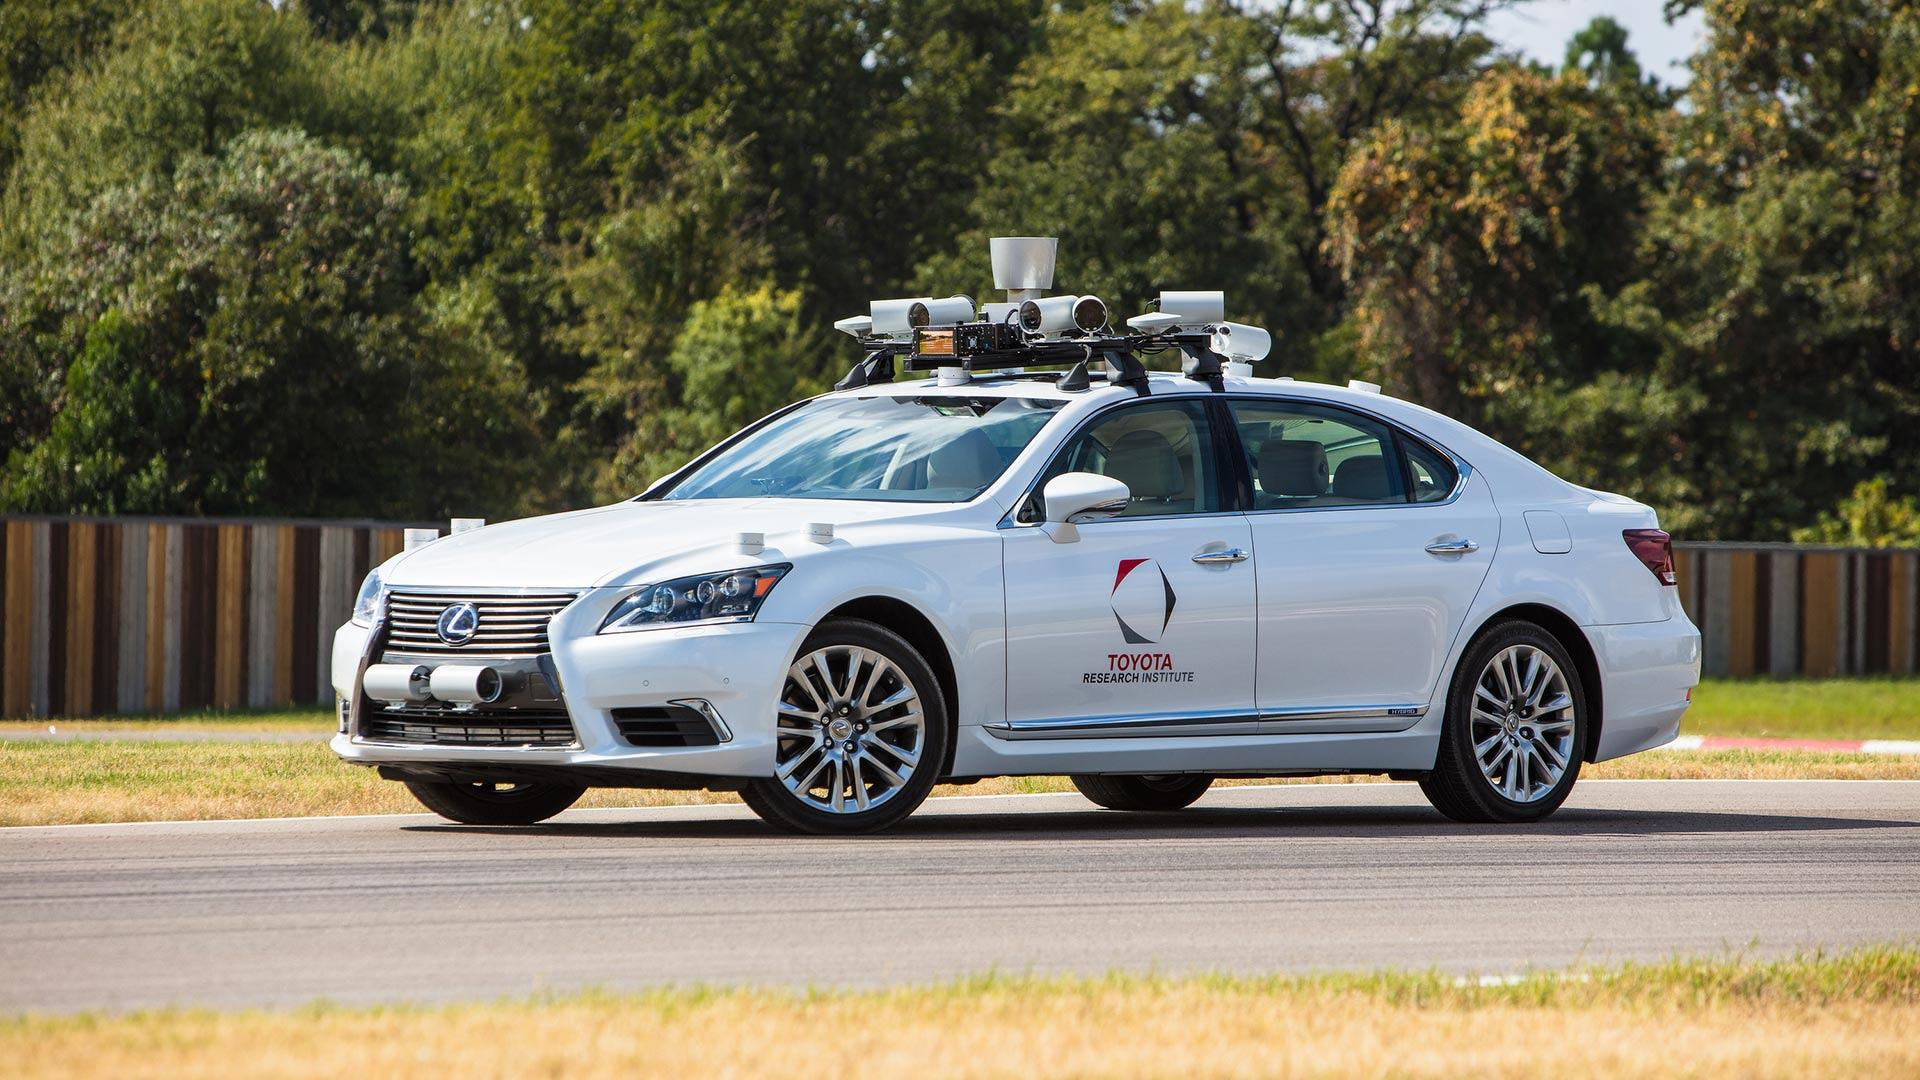 toyota-research-institute-autonomous-test-mule (2)